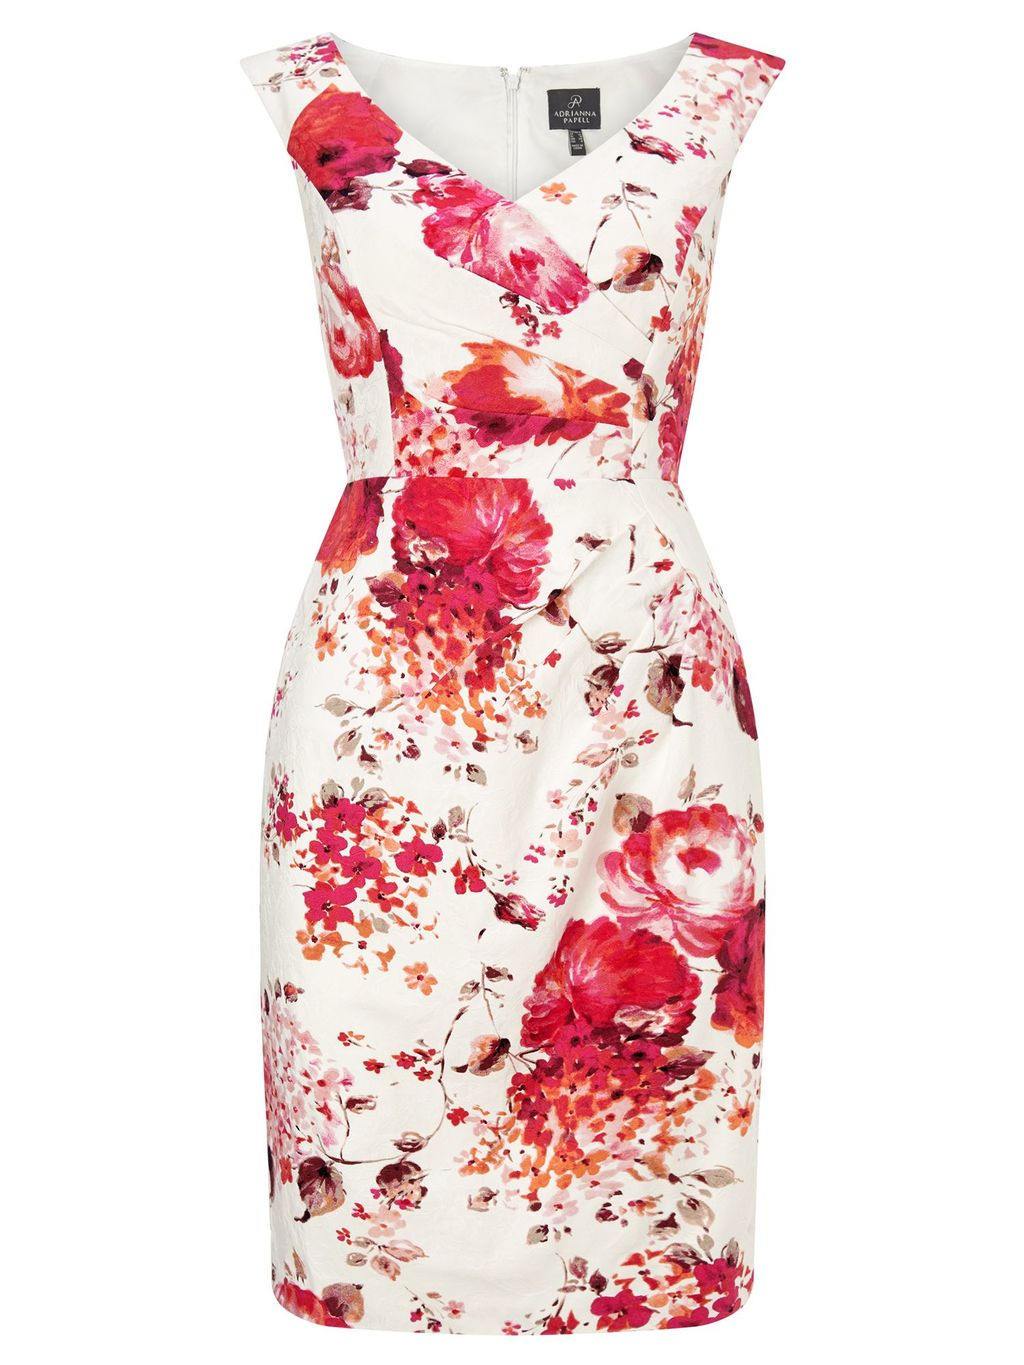 Floral Sheath Dress, Multi Coloured - style: shift; neckline: v-neck; sleeve style: capped; fit: tailored/fitted; predominant colour: ivory/cream; secondary colour: true red; length: just above the knee; fibres: polyester/polyamide - stretch; occasions: occasion; sleeve length: sleeveless; pattern type: fabric; pattern size: big & busy; pattern: florals; texture group: woven light midweight; multicoloured: multicoloured; season: s/s 2016; wardrobe: event